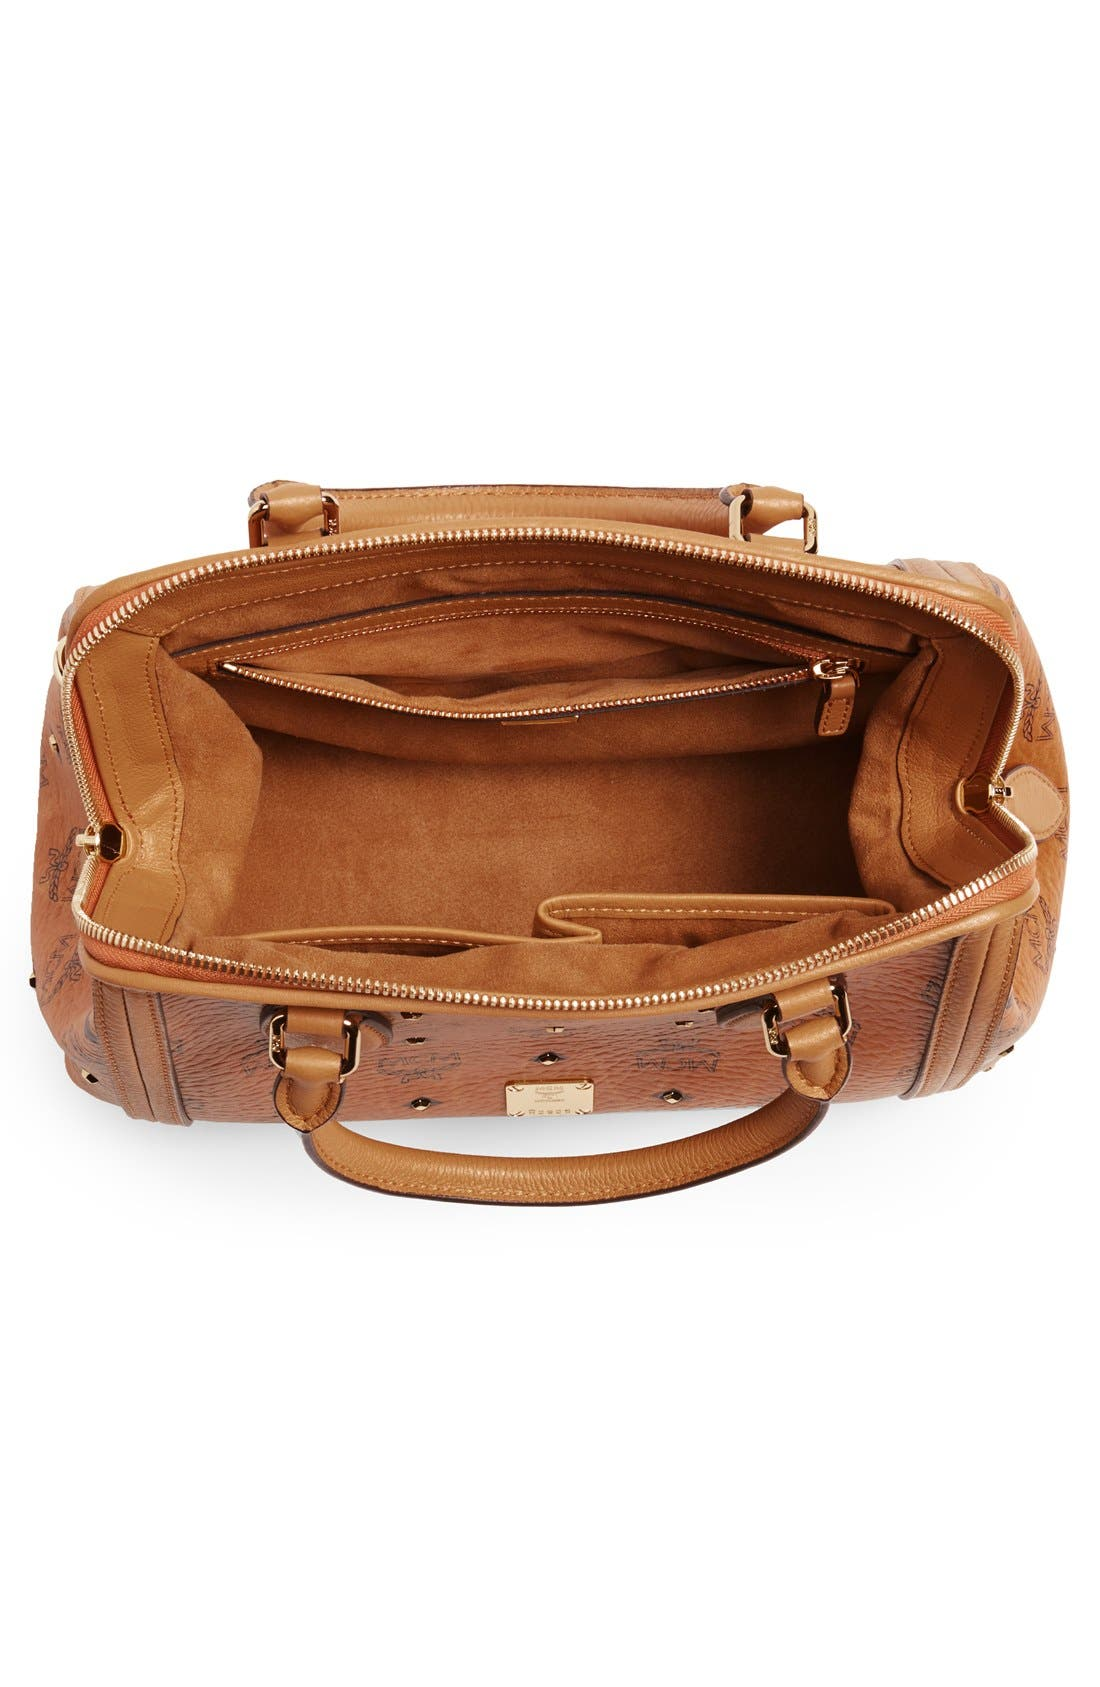 'Small Gold Visetos' Studded Doctor Bag,                             Alternate thumbnail 4, color,                             200